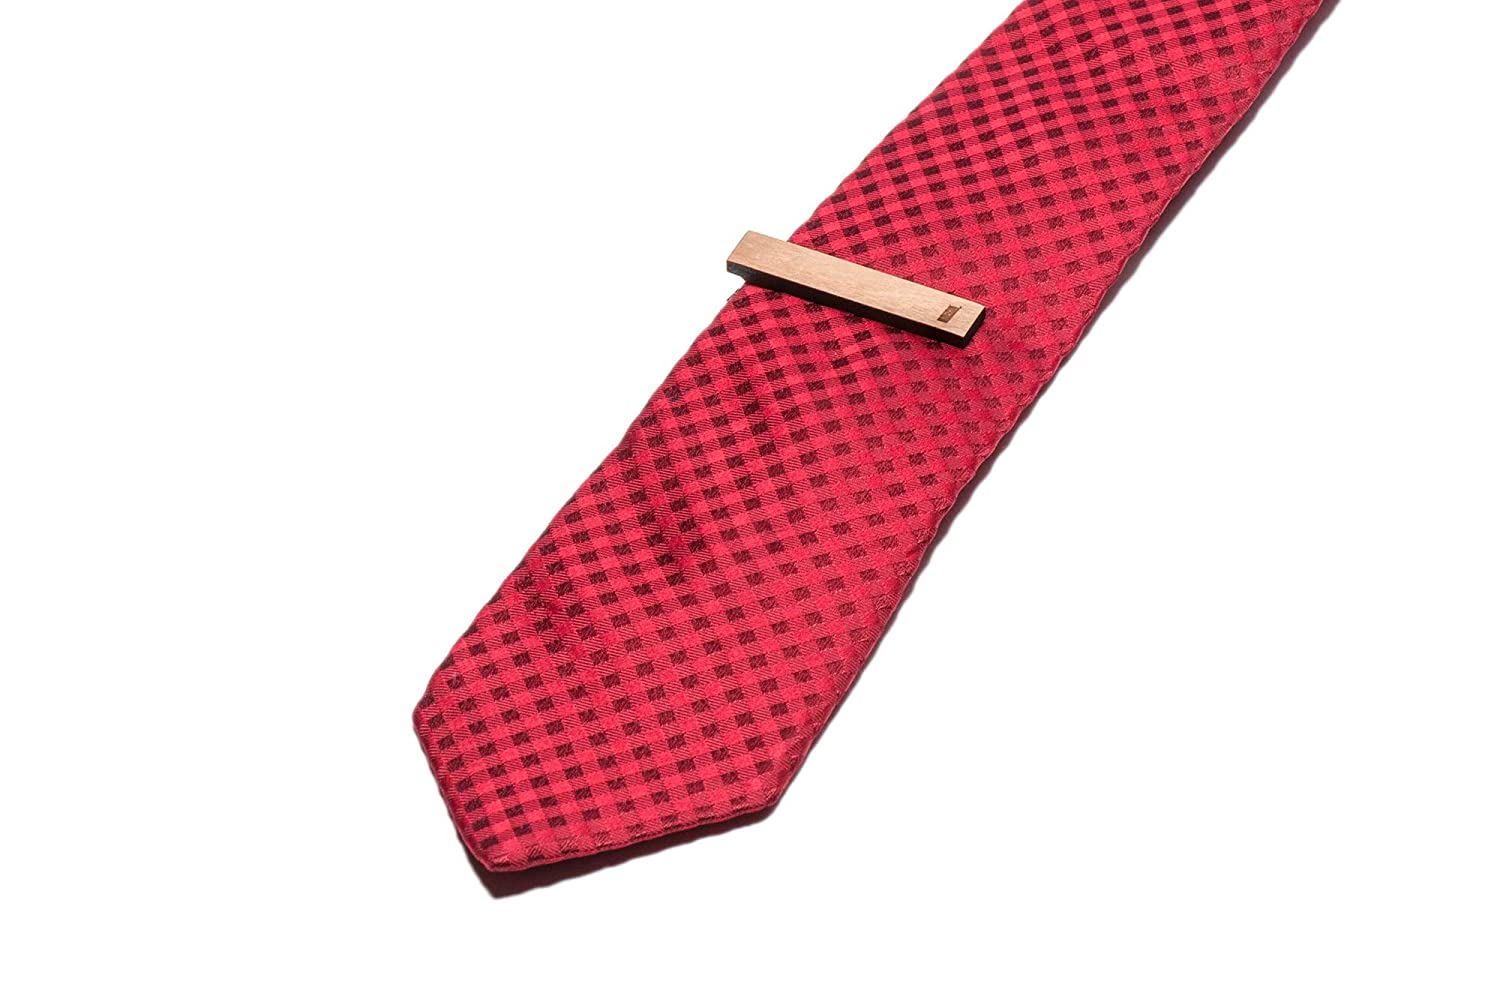 Wooden Accessories Company Wooden Tie Clips with Laser Engraved C7 Chord Design Cherry Wood Tie Bar Engraved in The USA